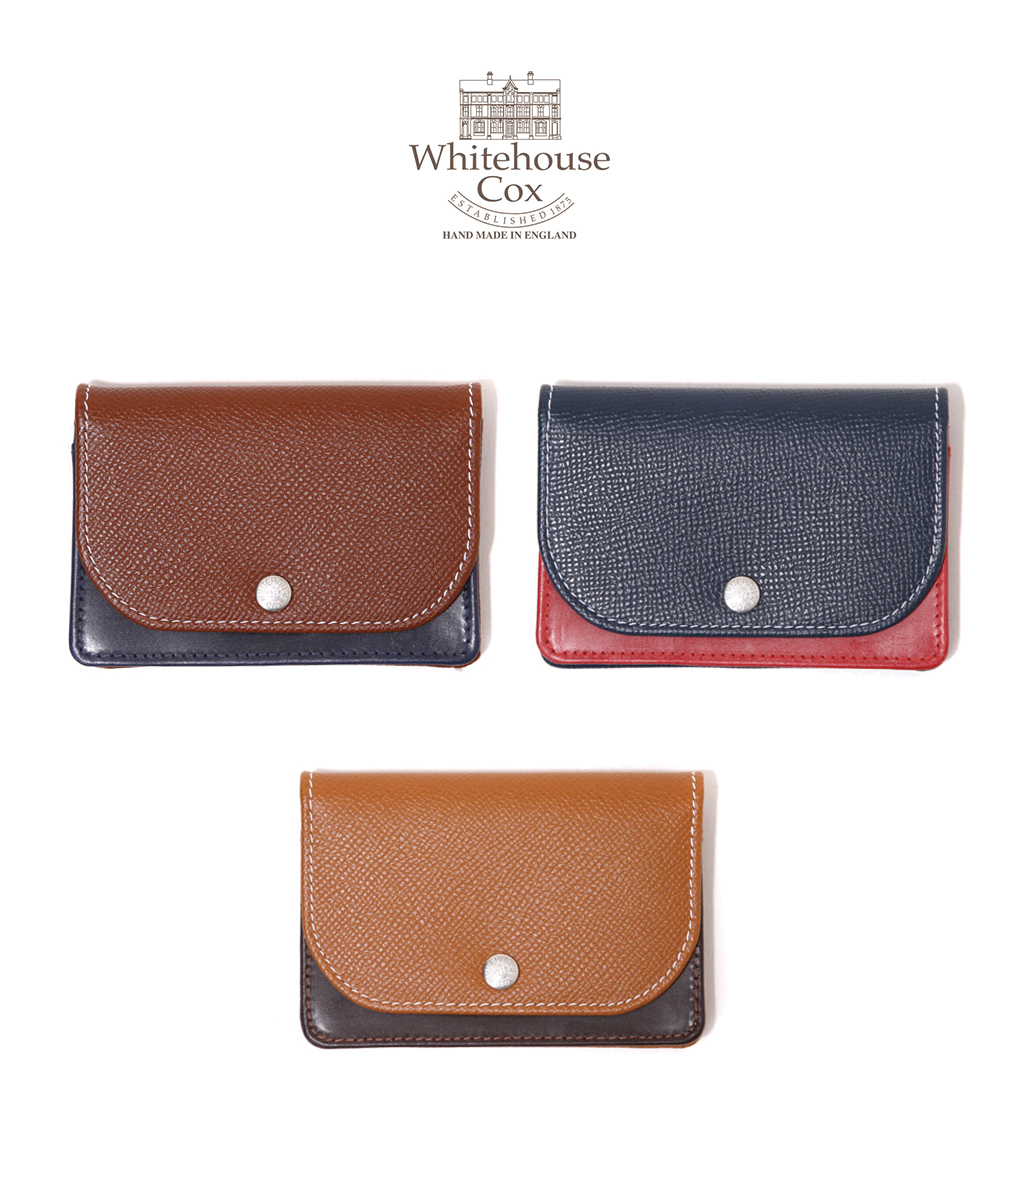 Whitehouse Cox / ホワイトハウスコックス : 【LONDON CALF×BRIDLE LEATHER COLLECTION】NAMECARD CASE with GUSSET / 全3色 : ネームカードケース 名刺入れ レザー ギフトラッピング可能 : S-1751-LONDONCALF-BLC【MUS】